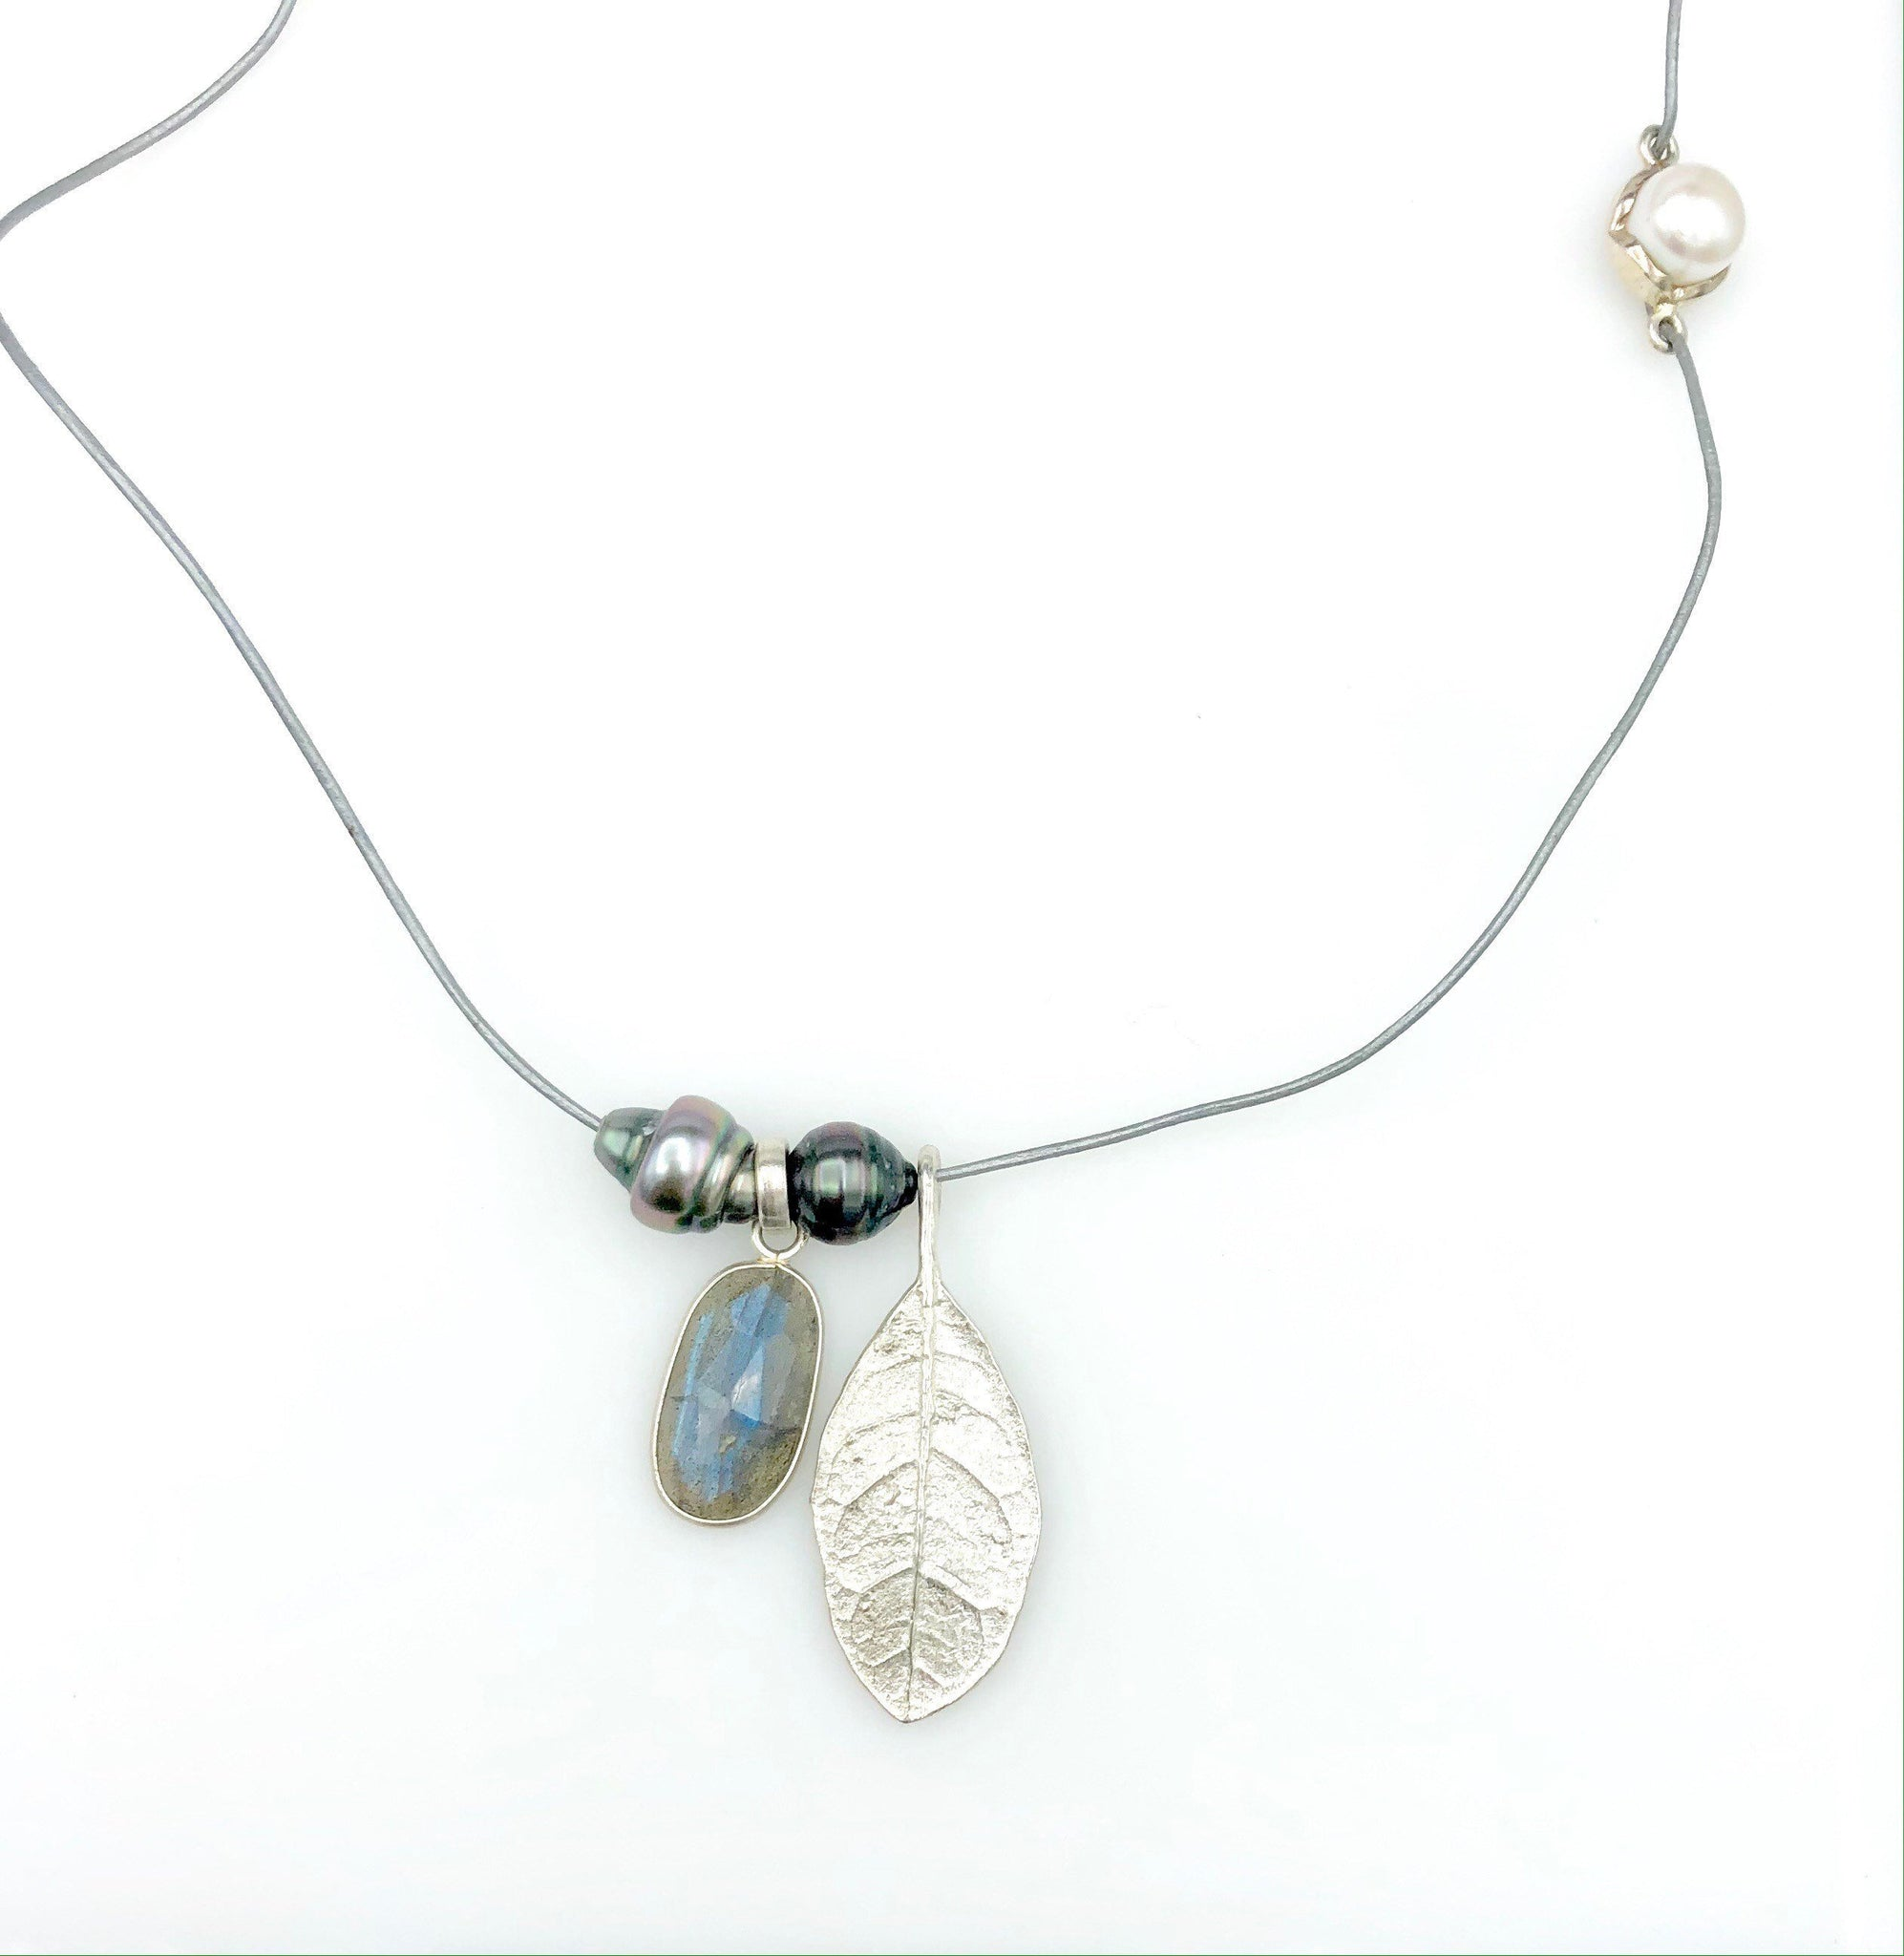 Silver Cord with Pearls, Labradorite & Sterling Silver